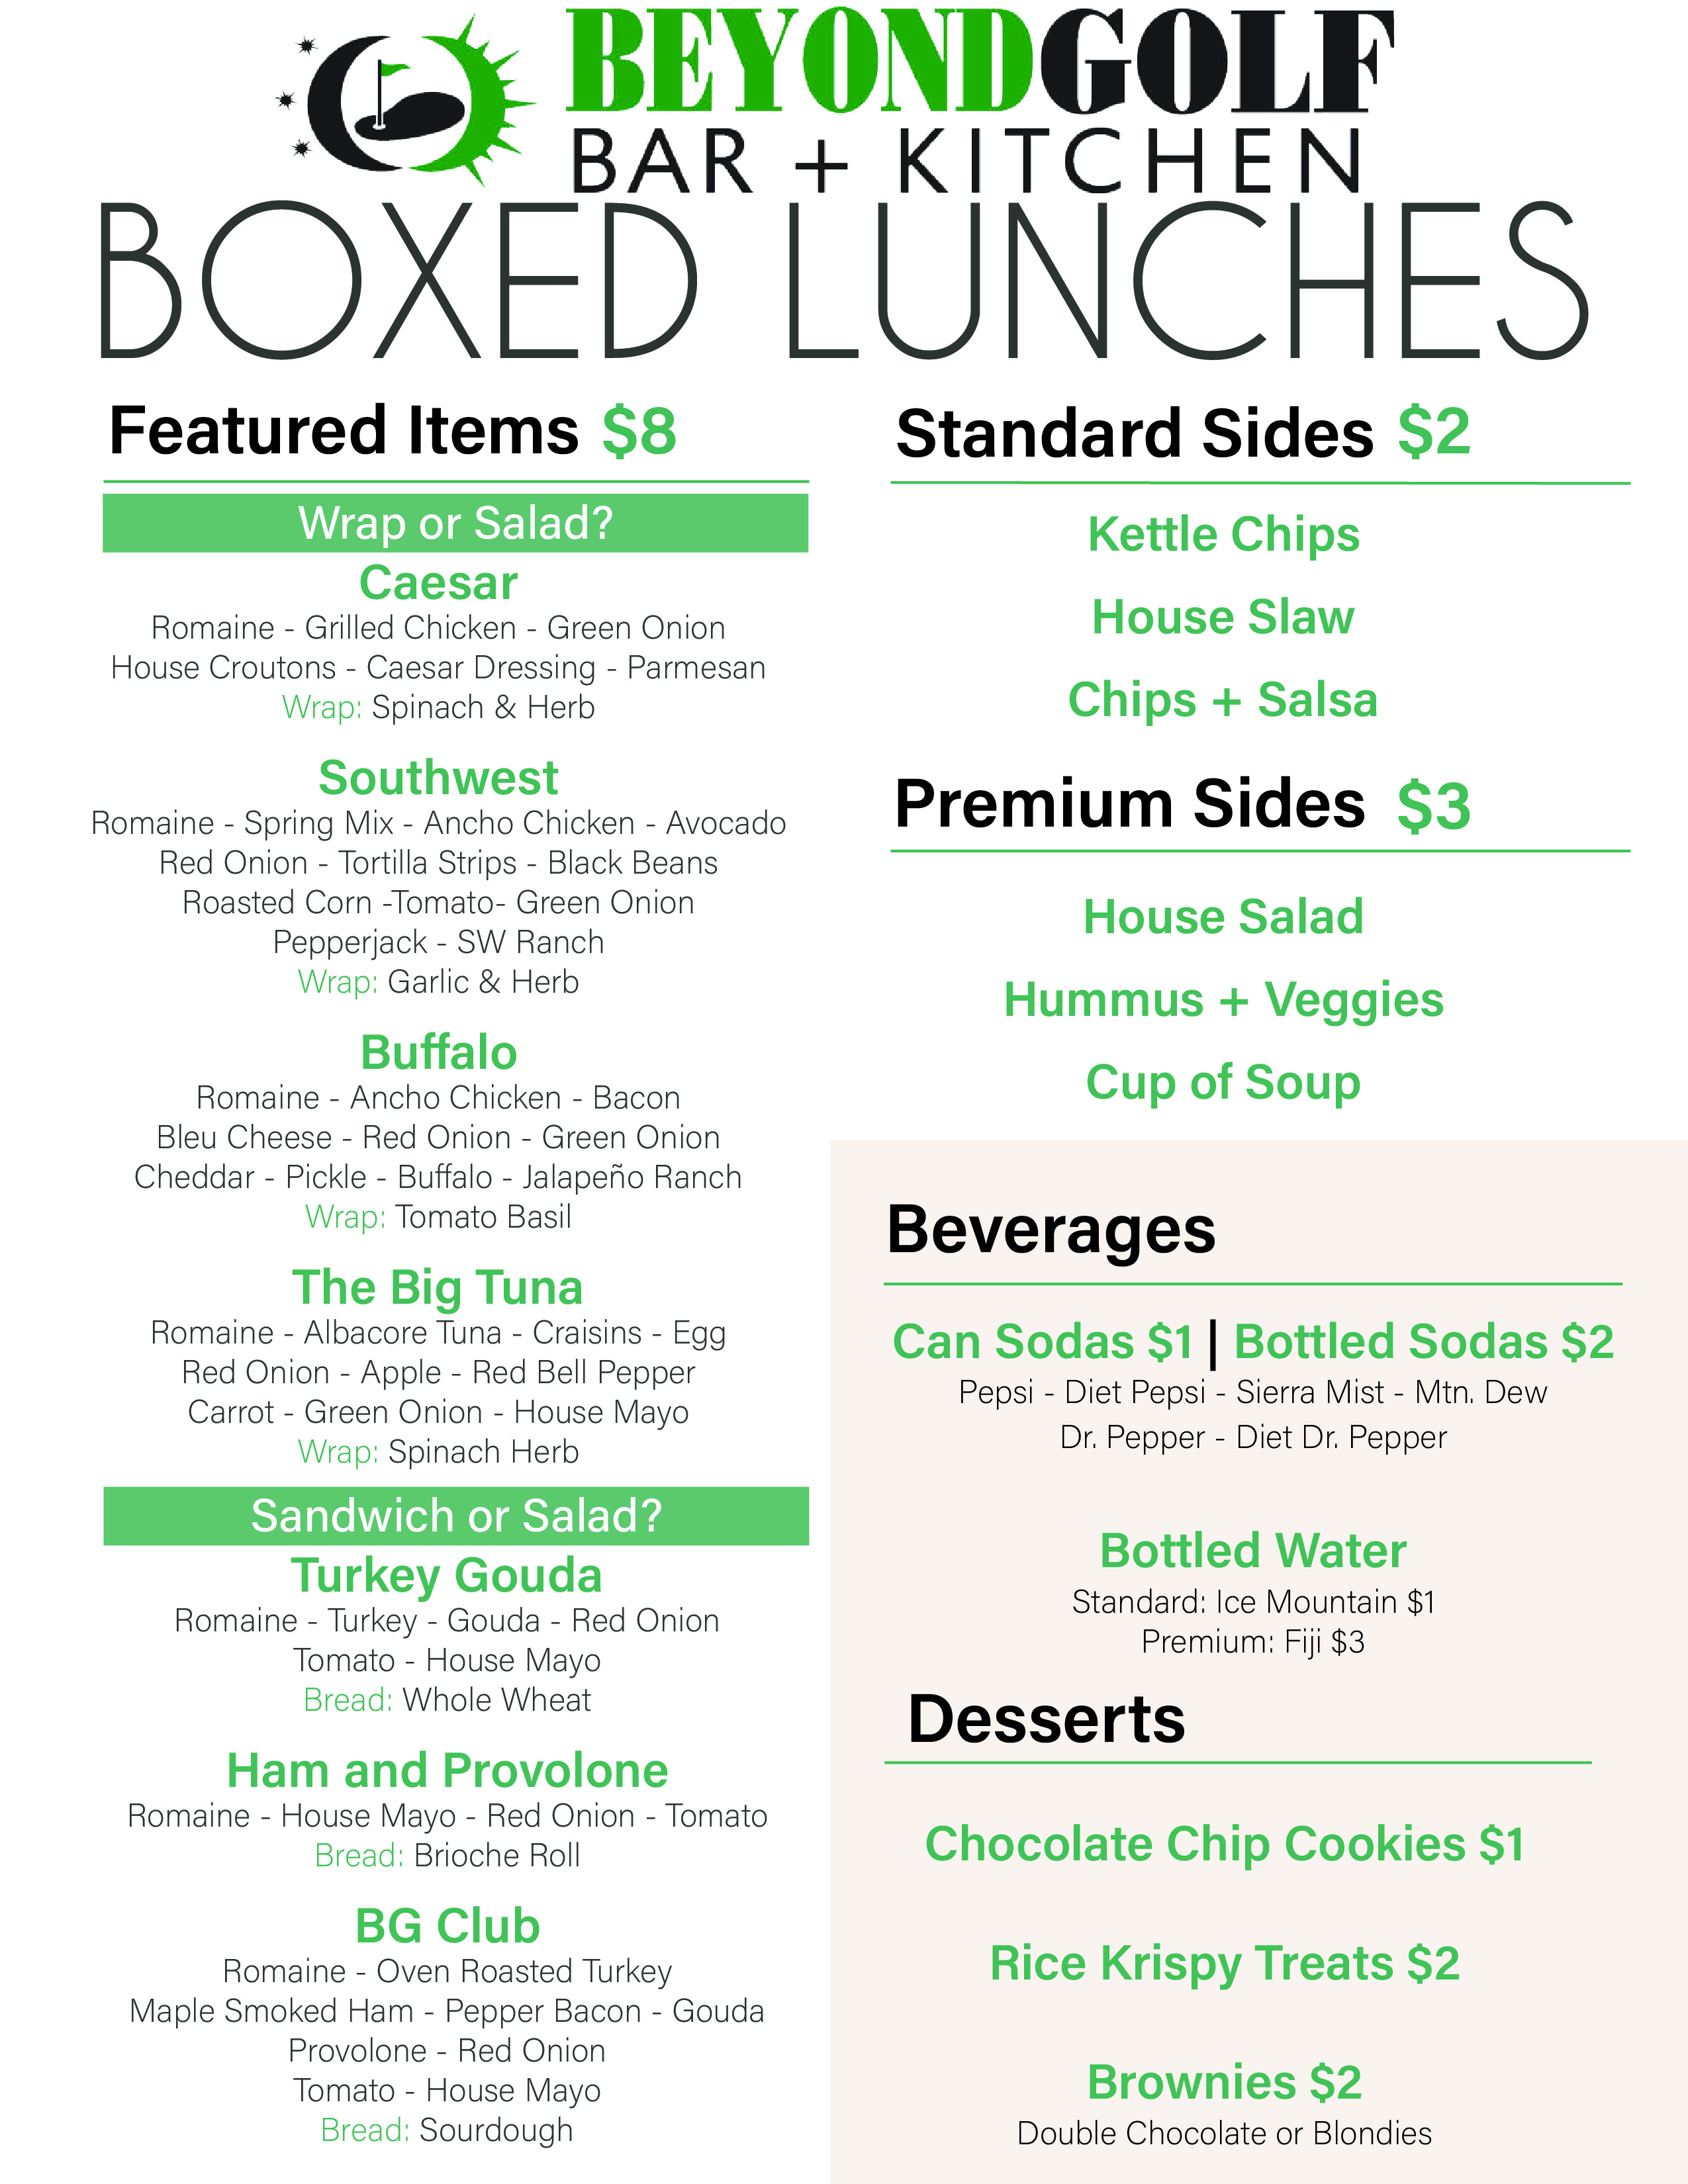 Boxed lunches menu